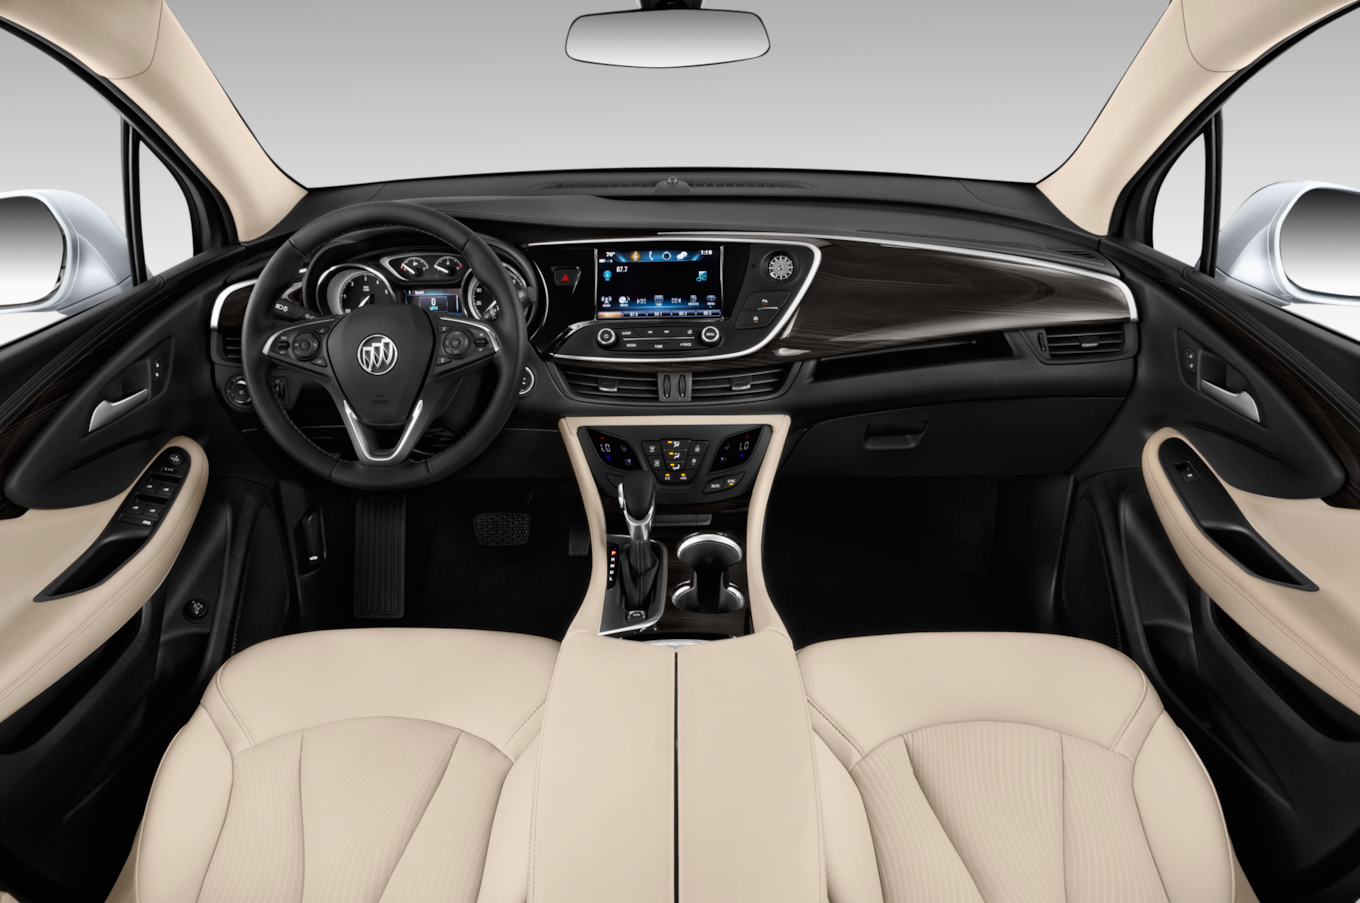 86 New 2019 Buick Envision Interior with 2019 Buick Envision